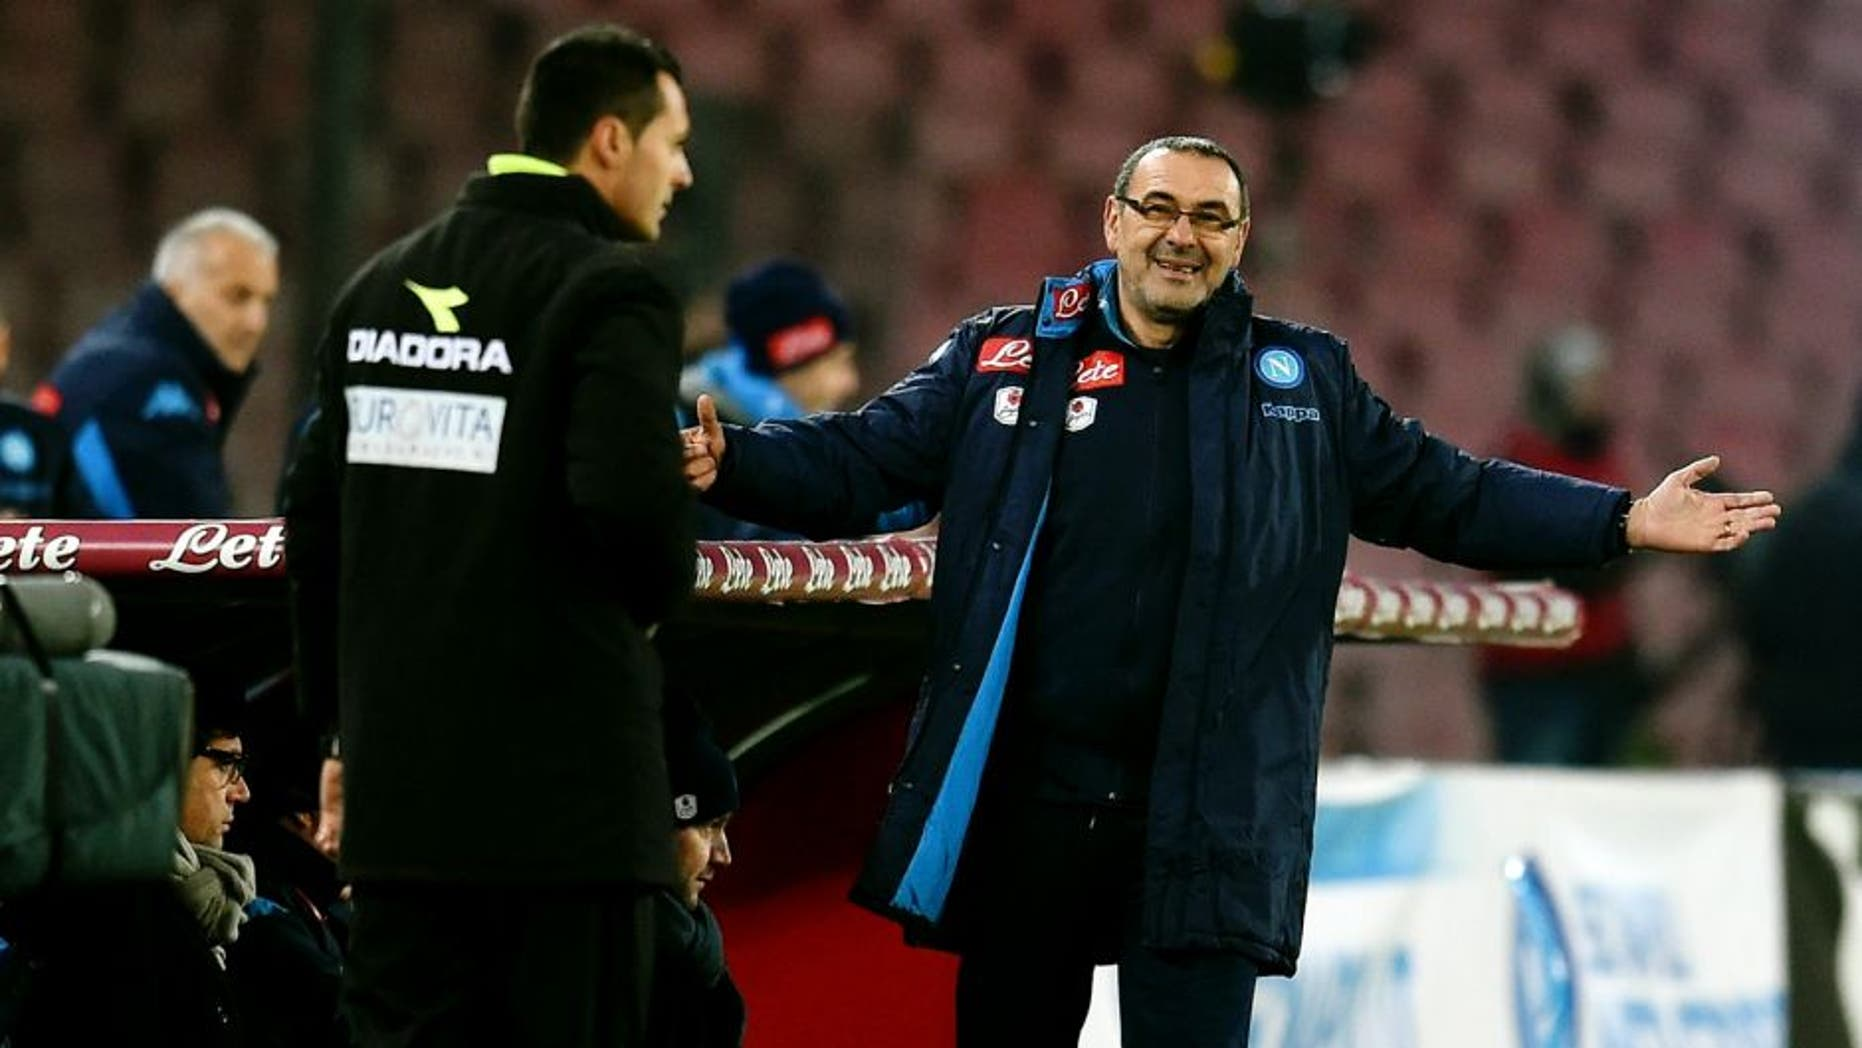 NAPLES, ITALY - JANUARY 19: Head coach FC Internazionale Roberto Mancini (L) and head coach SSC Napoli Maurizio Sarri react during the TIM Cup match between SSC Napoli and FC Internazionale Milano at Stadio San Paolo on January 19, 2016 in Naples, Italy. (Photo by Claudio Villa - Inter/Inter via Getty Images)